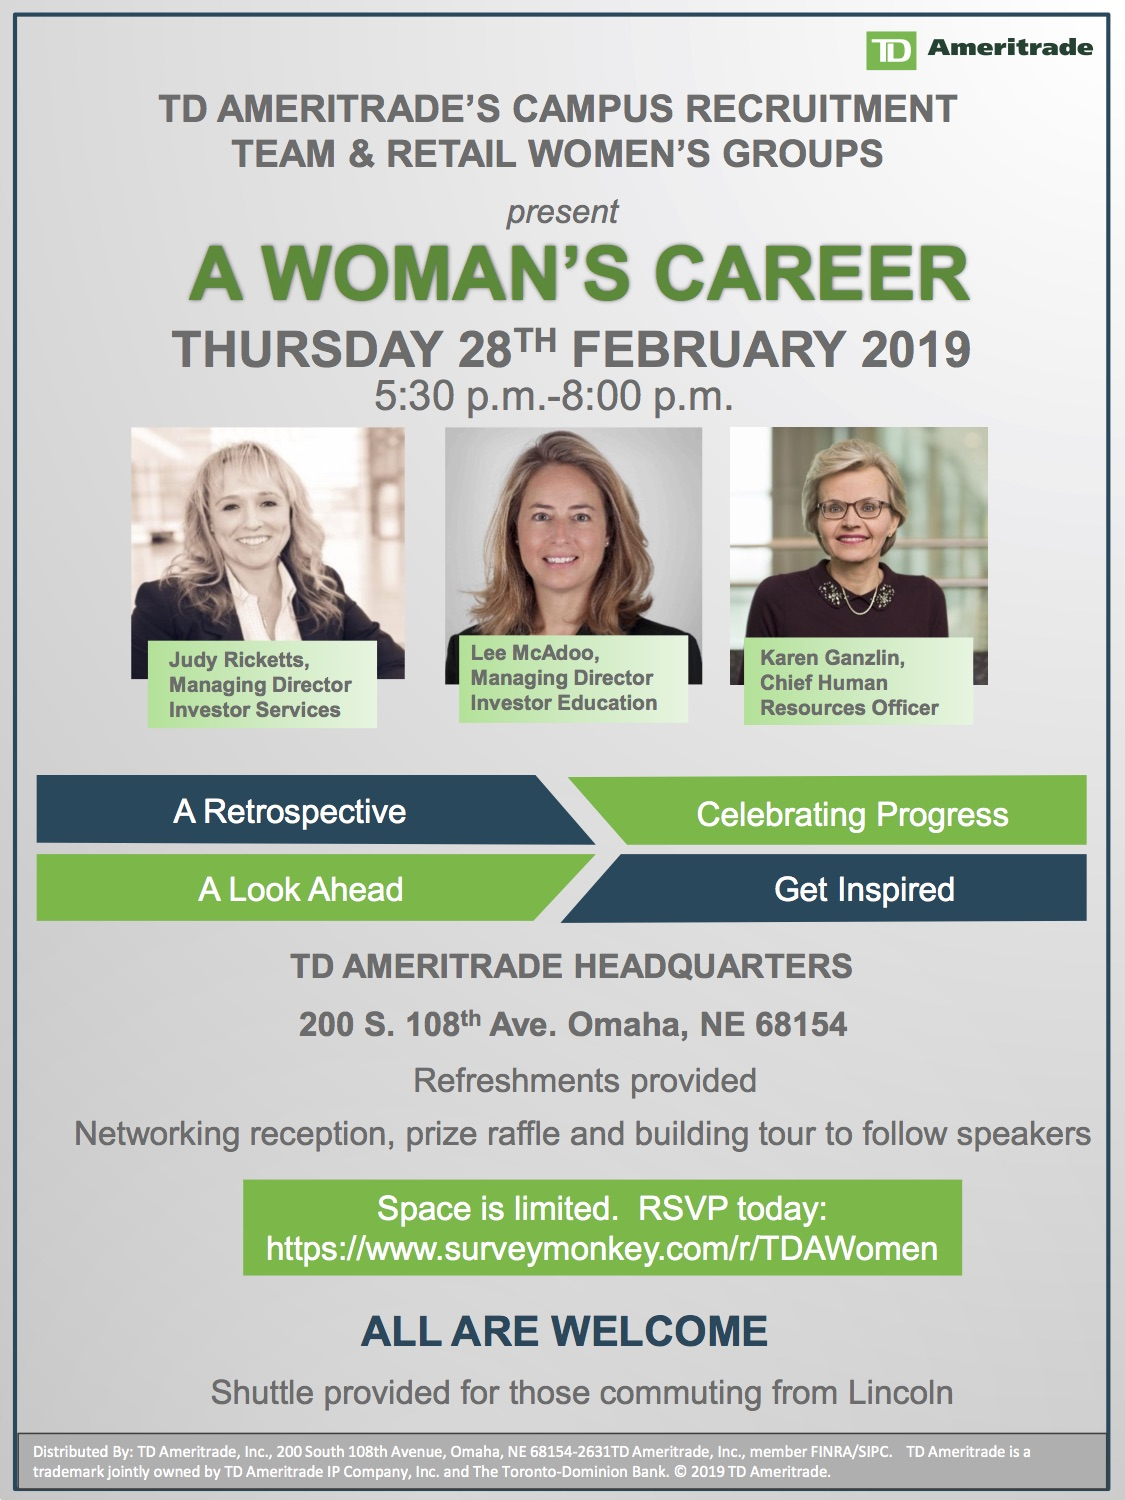 Attend Woman's Career Presentation by TD Ameritrade | Announce